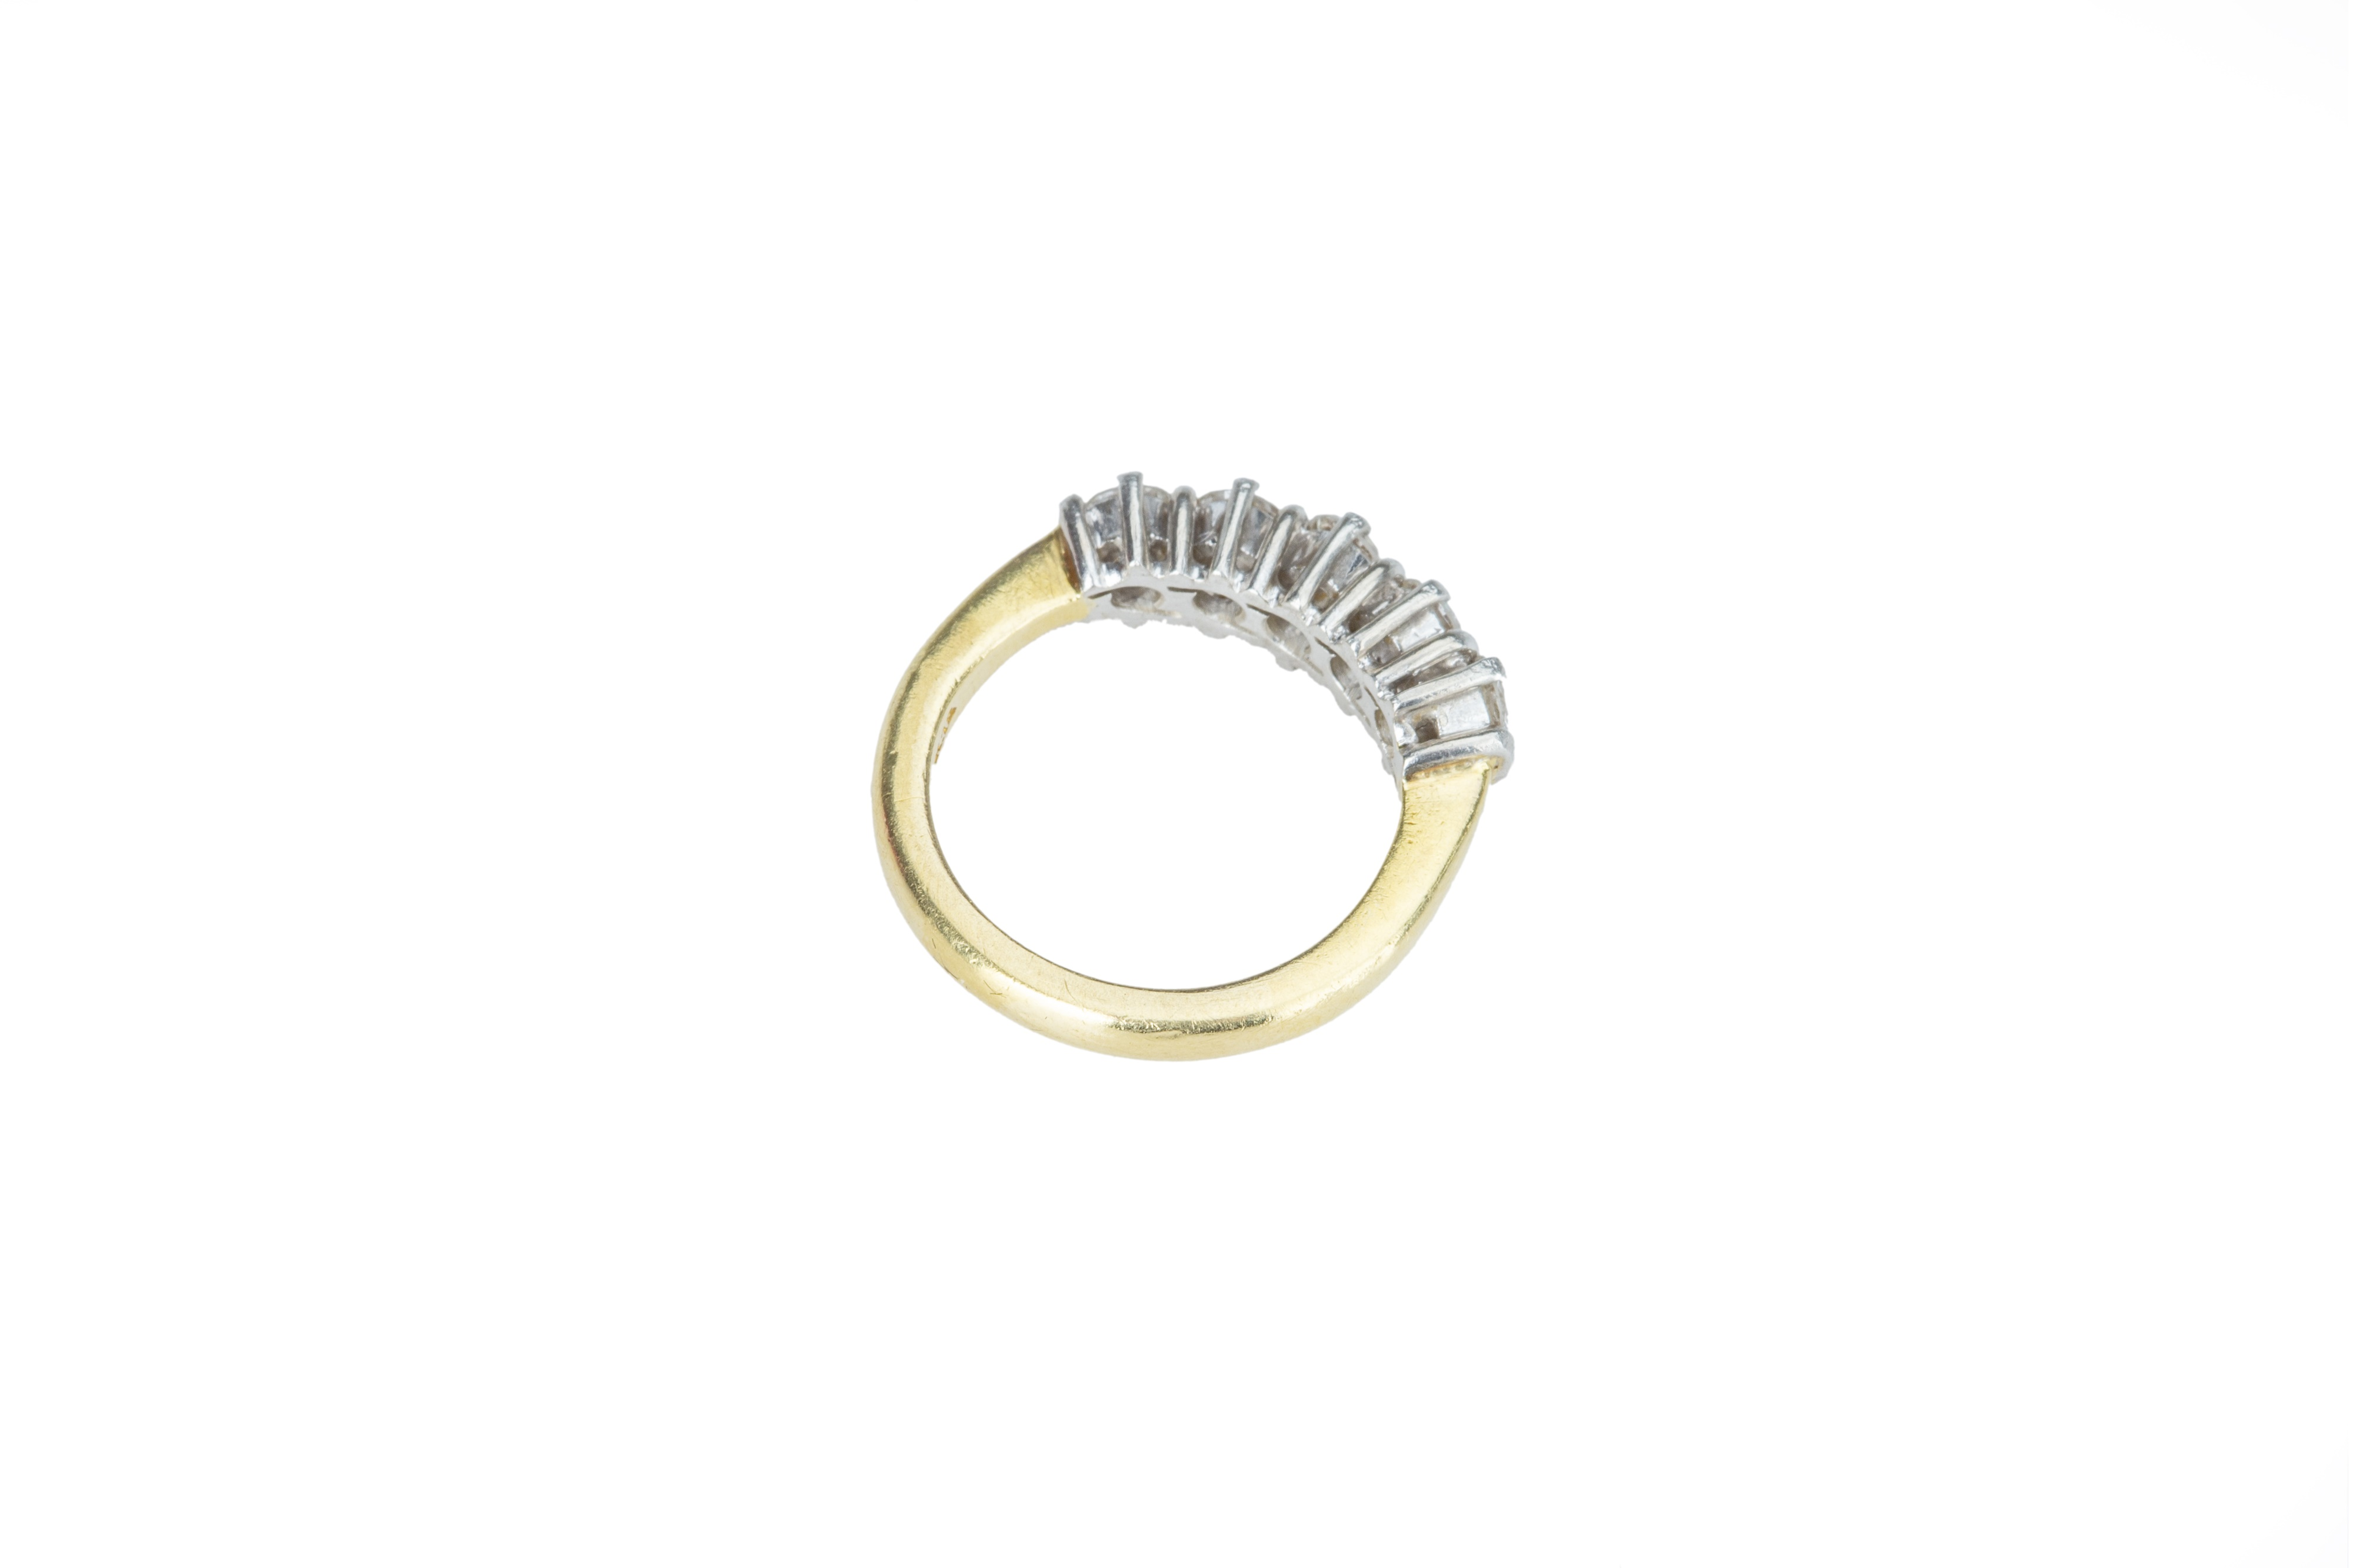 A five stone diamond ring - Image 3 of 5